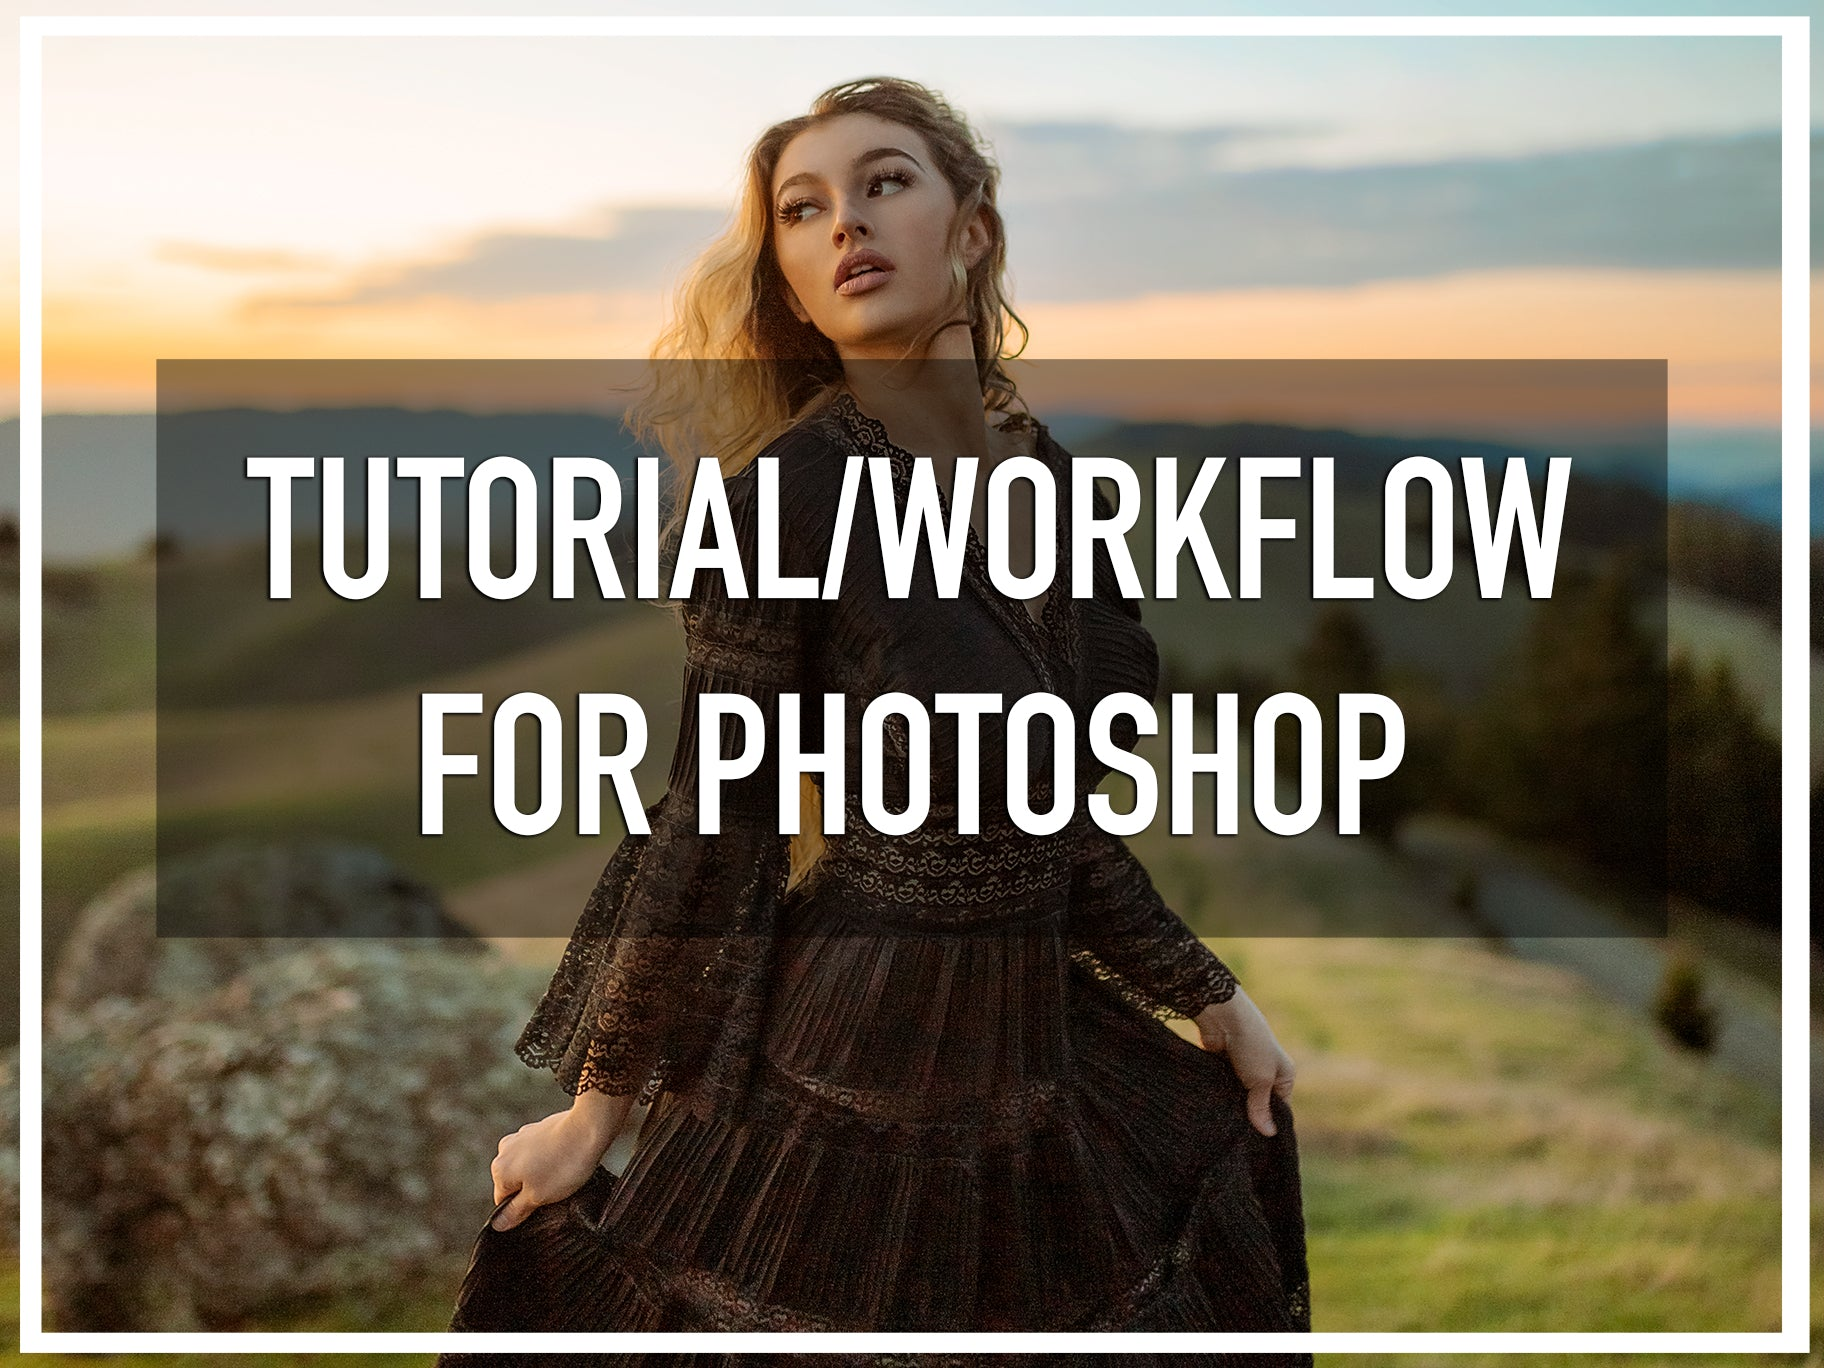 PHOTOSHOP TUTORIAL/WORKFLOW